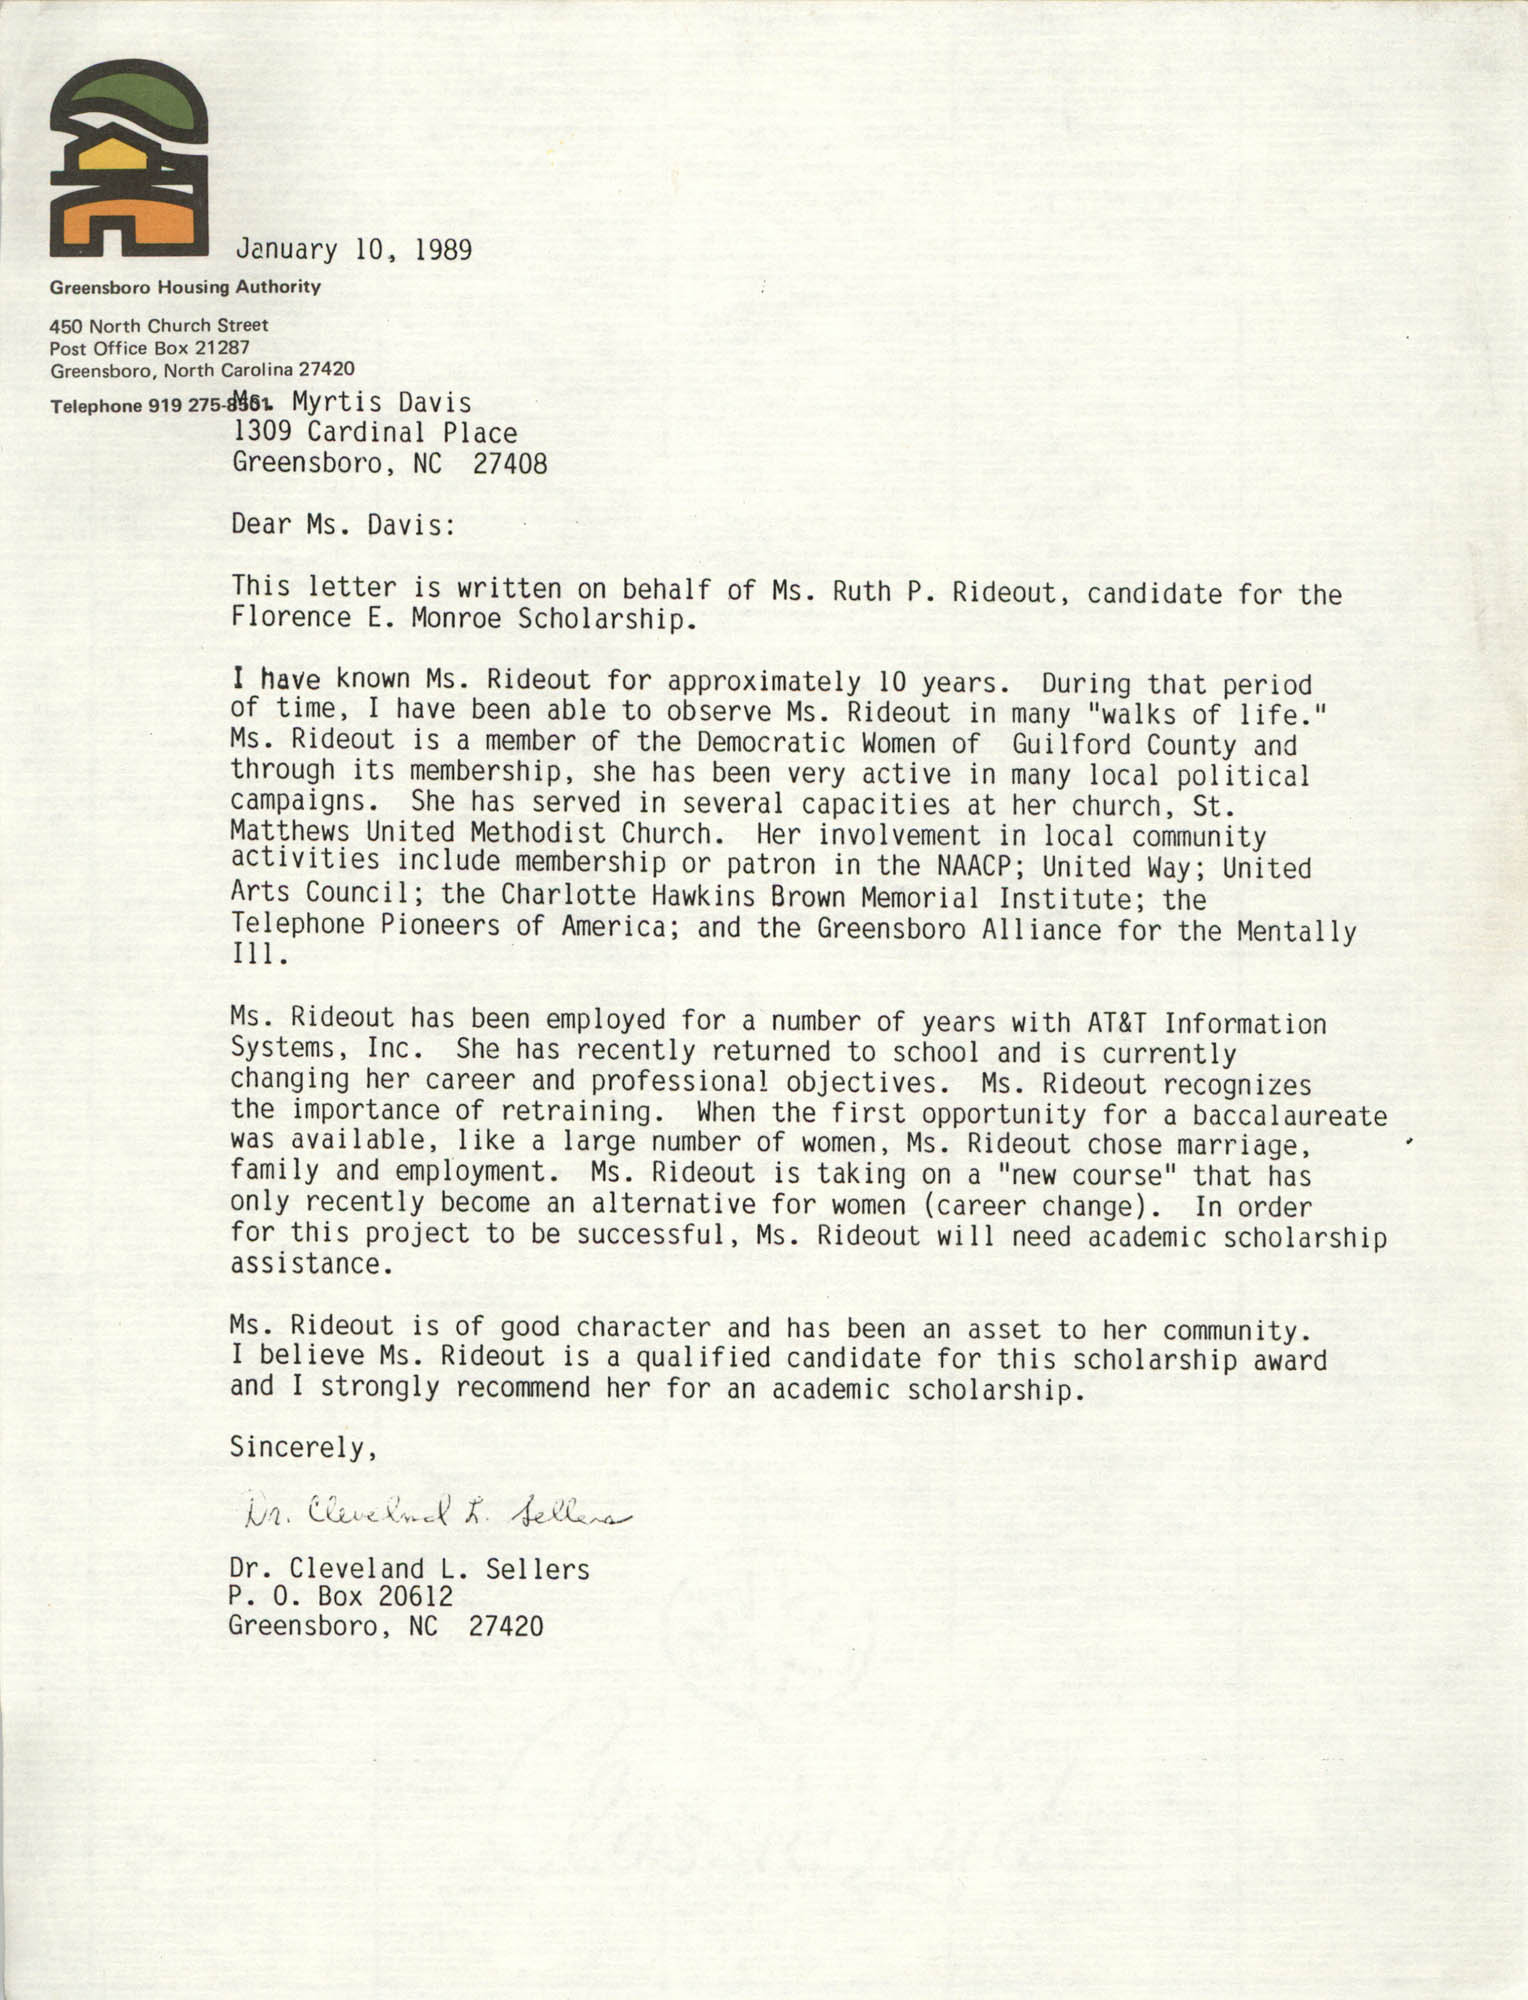 Letter from Cleveland Sellers to Myrtis Davis, January 10, 1989